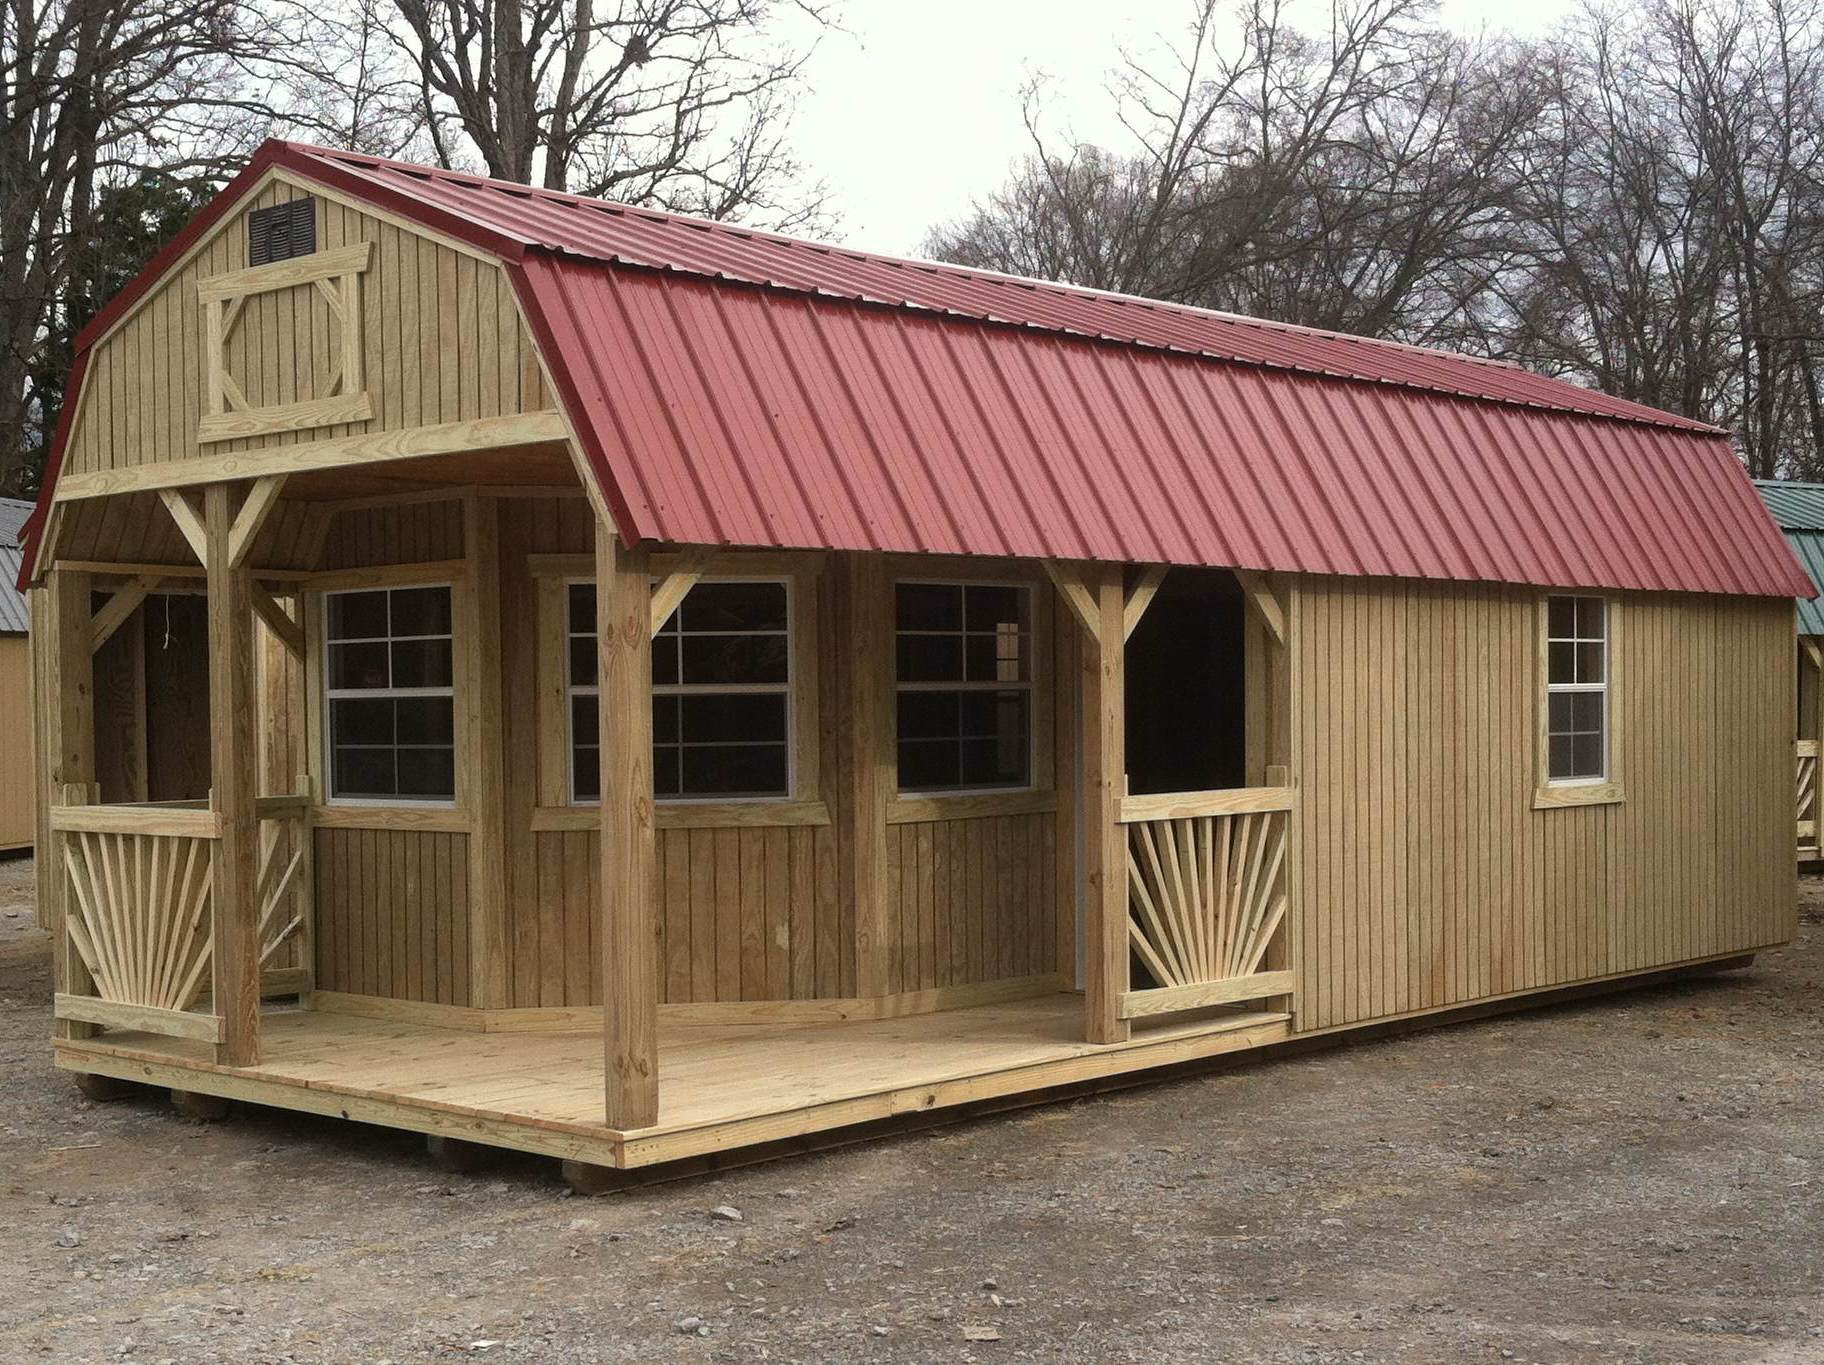 hickory sheds west cabins cabins n small homes